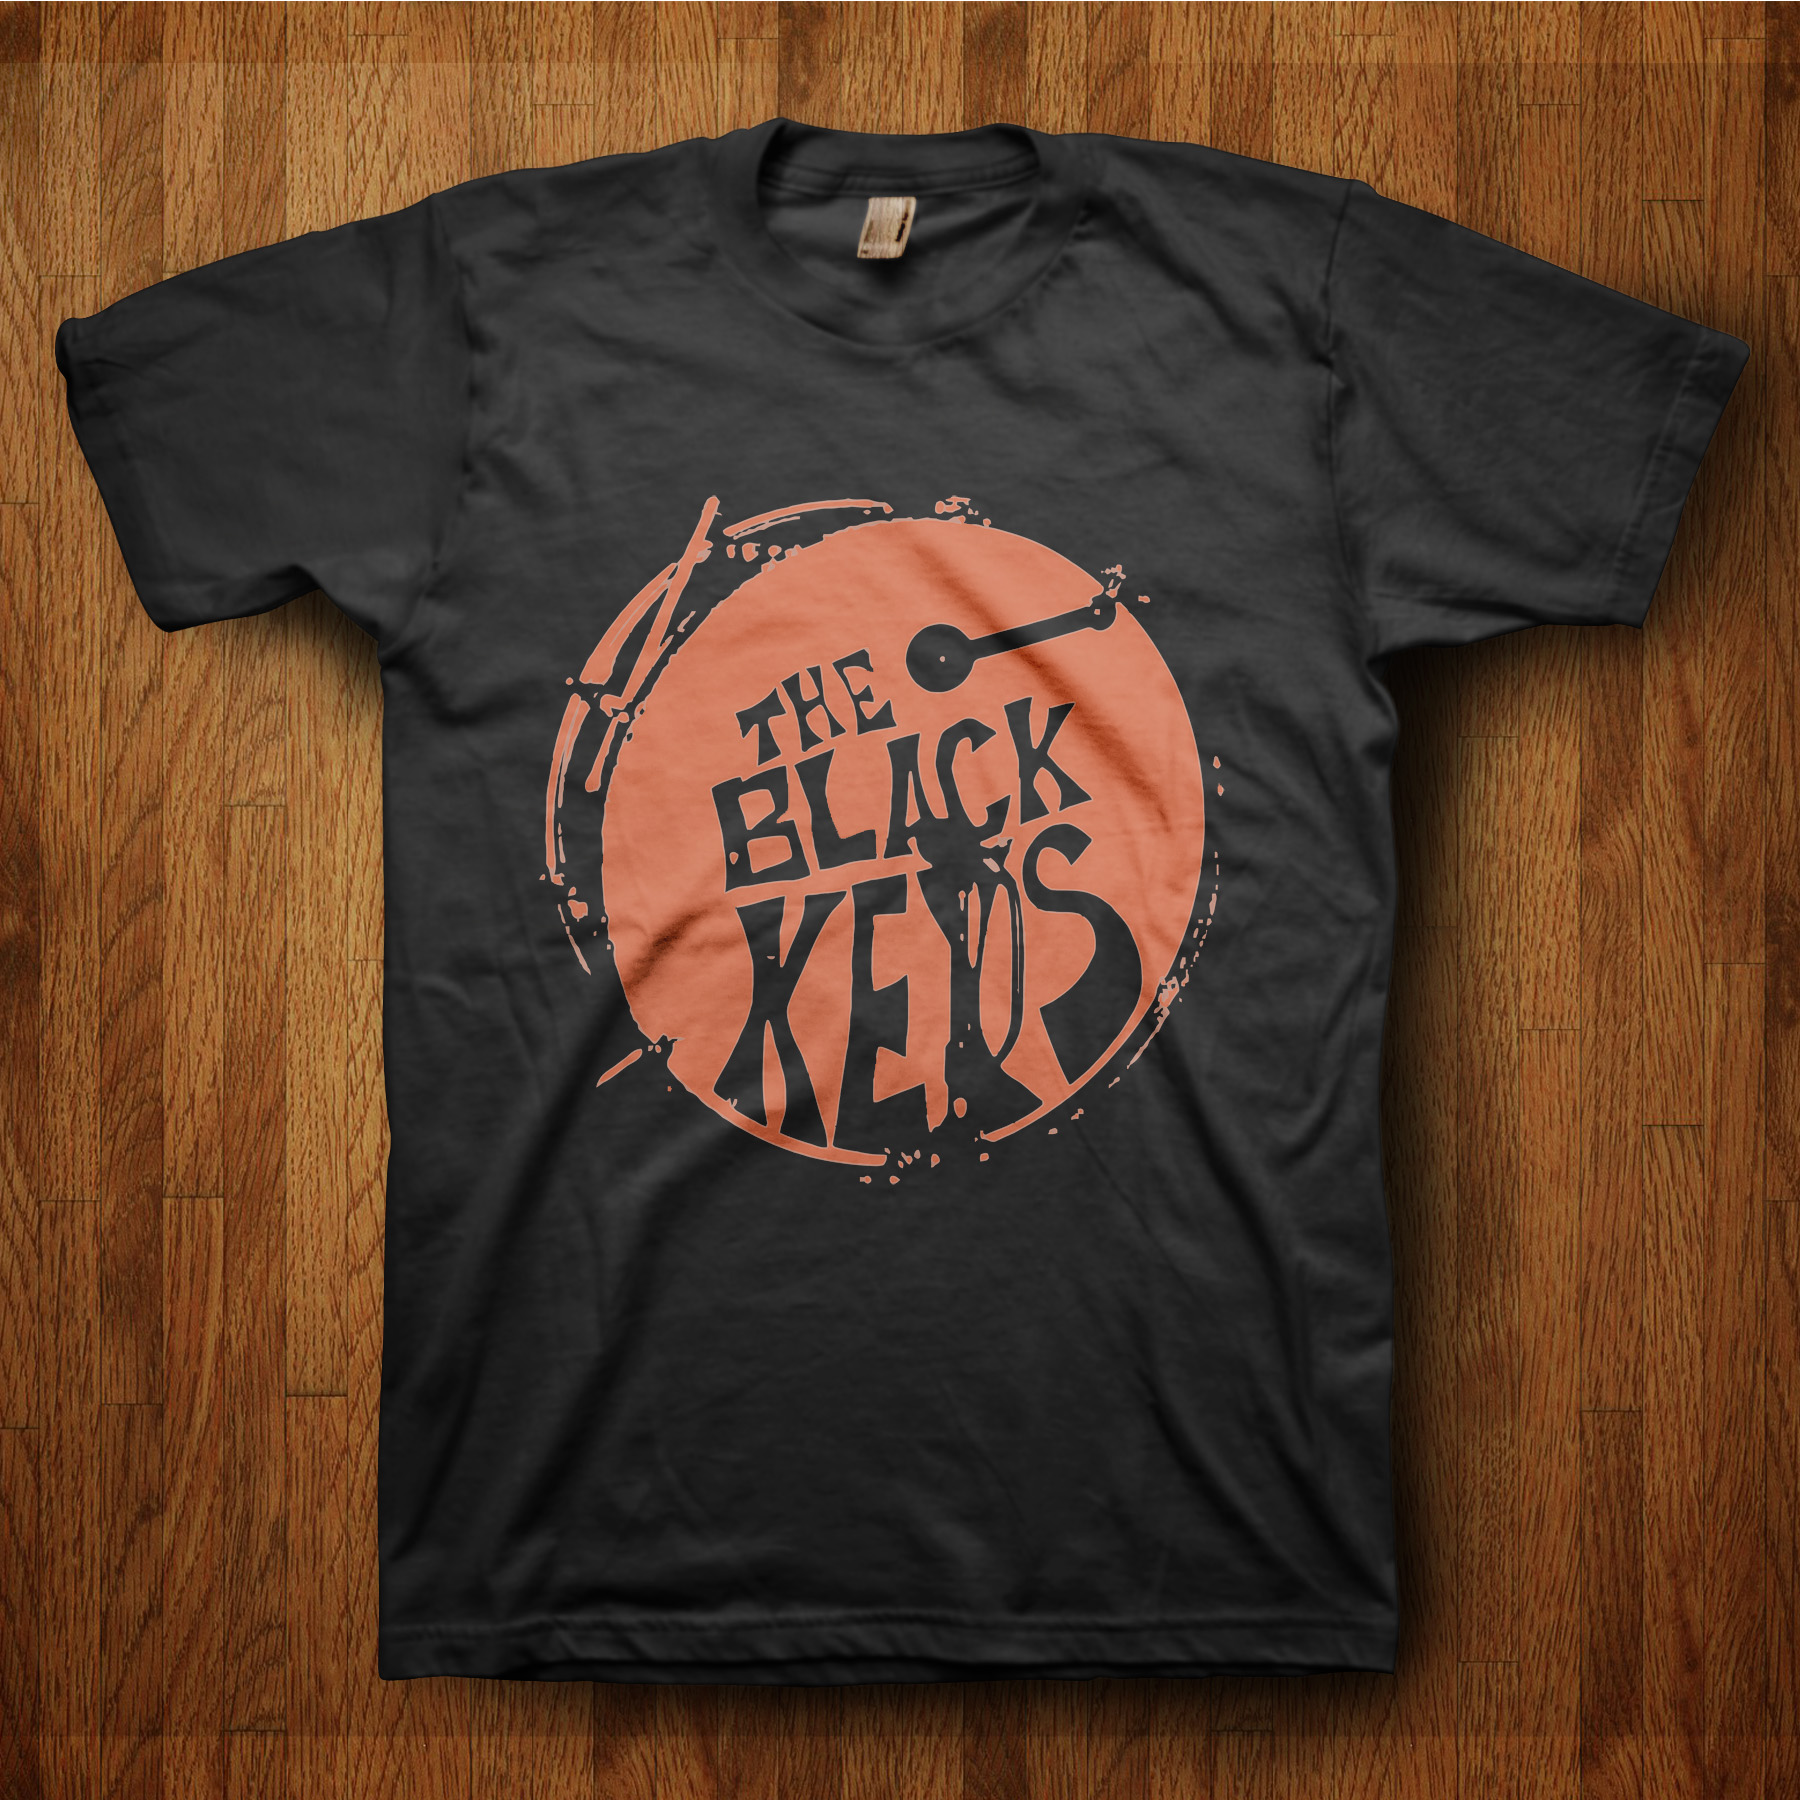 Black keys t shirt uk - Black Keys T Shirt Uk Black